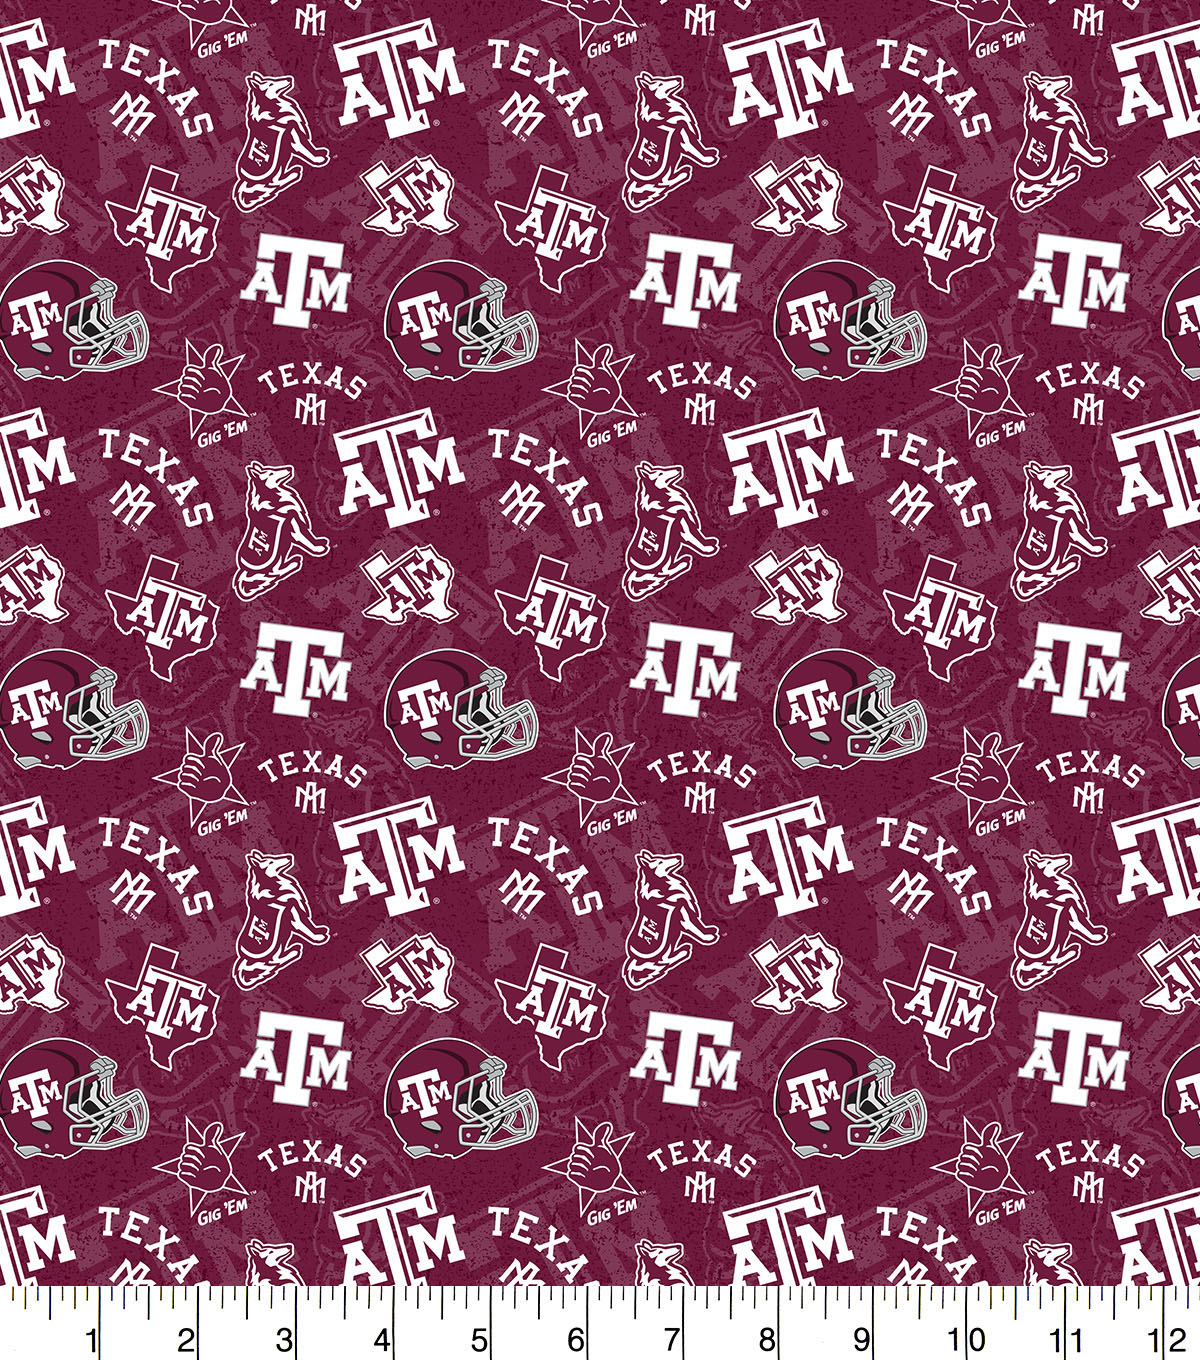 Texas A&M University Aggies Cotton Fabric-Tone on Tone